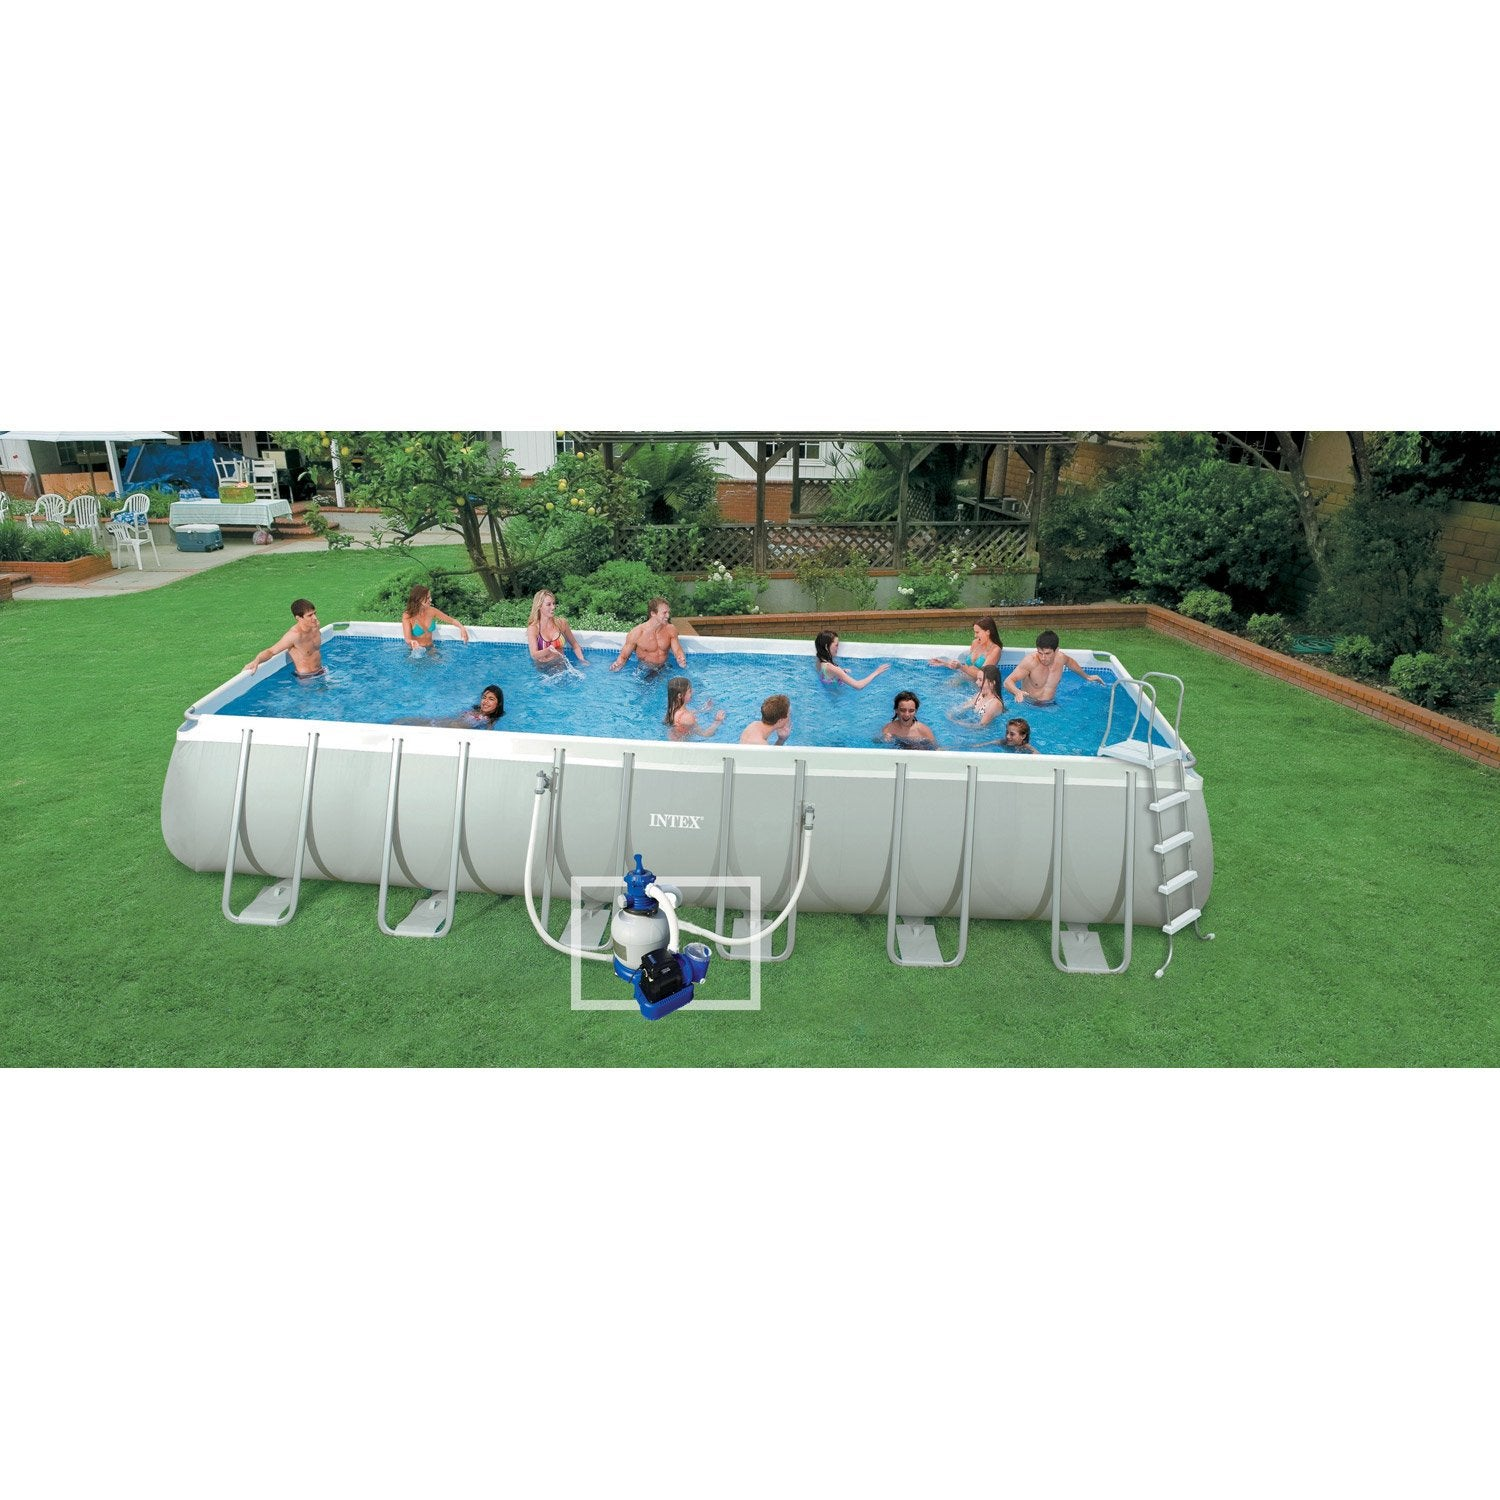 piscine hors sol autoportante tubulaire intex l x l